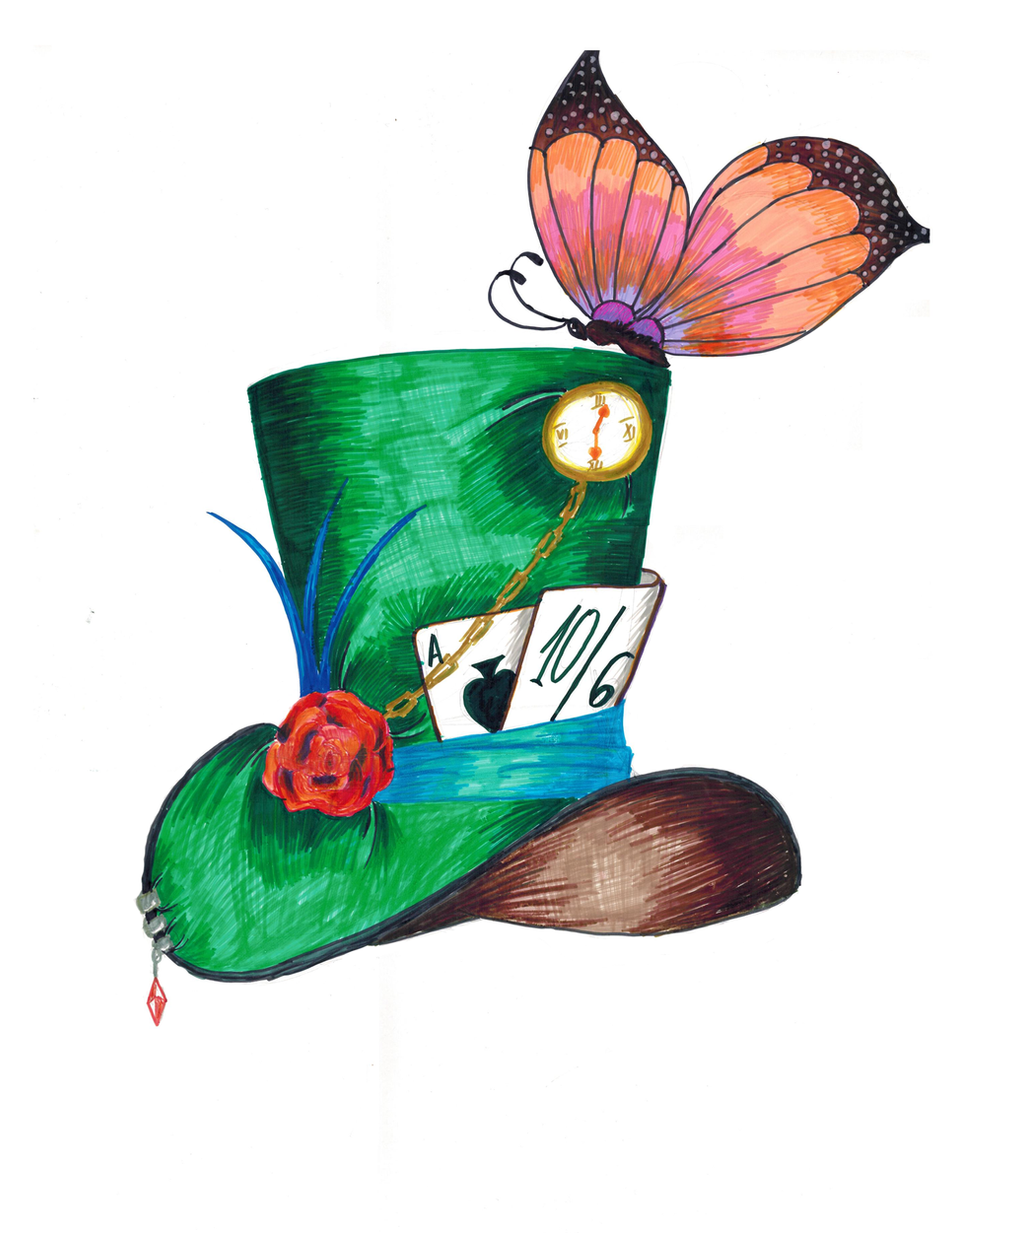 Mad Hatter's Hat by daniel---95 on DeviantArt